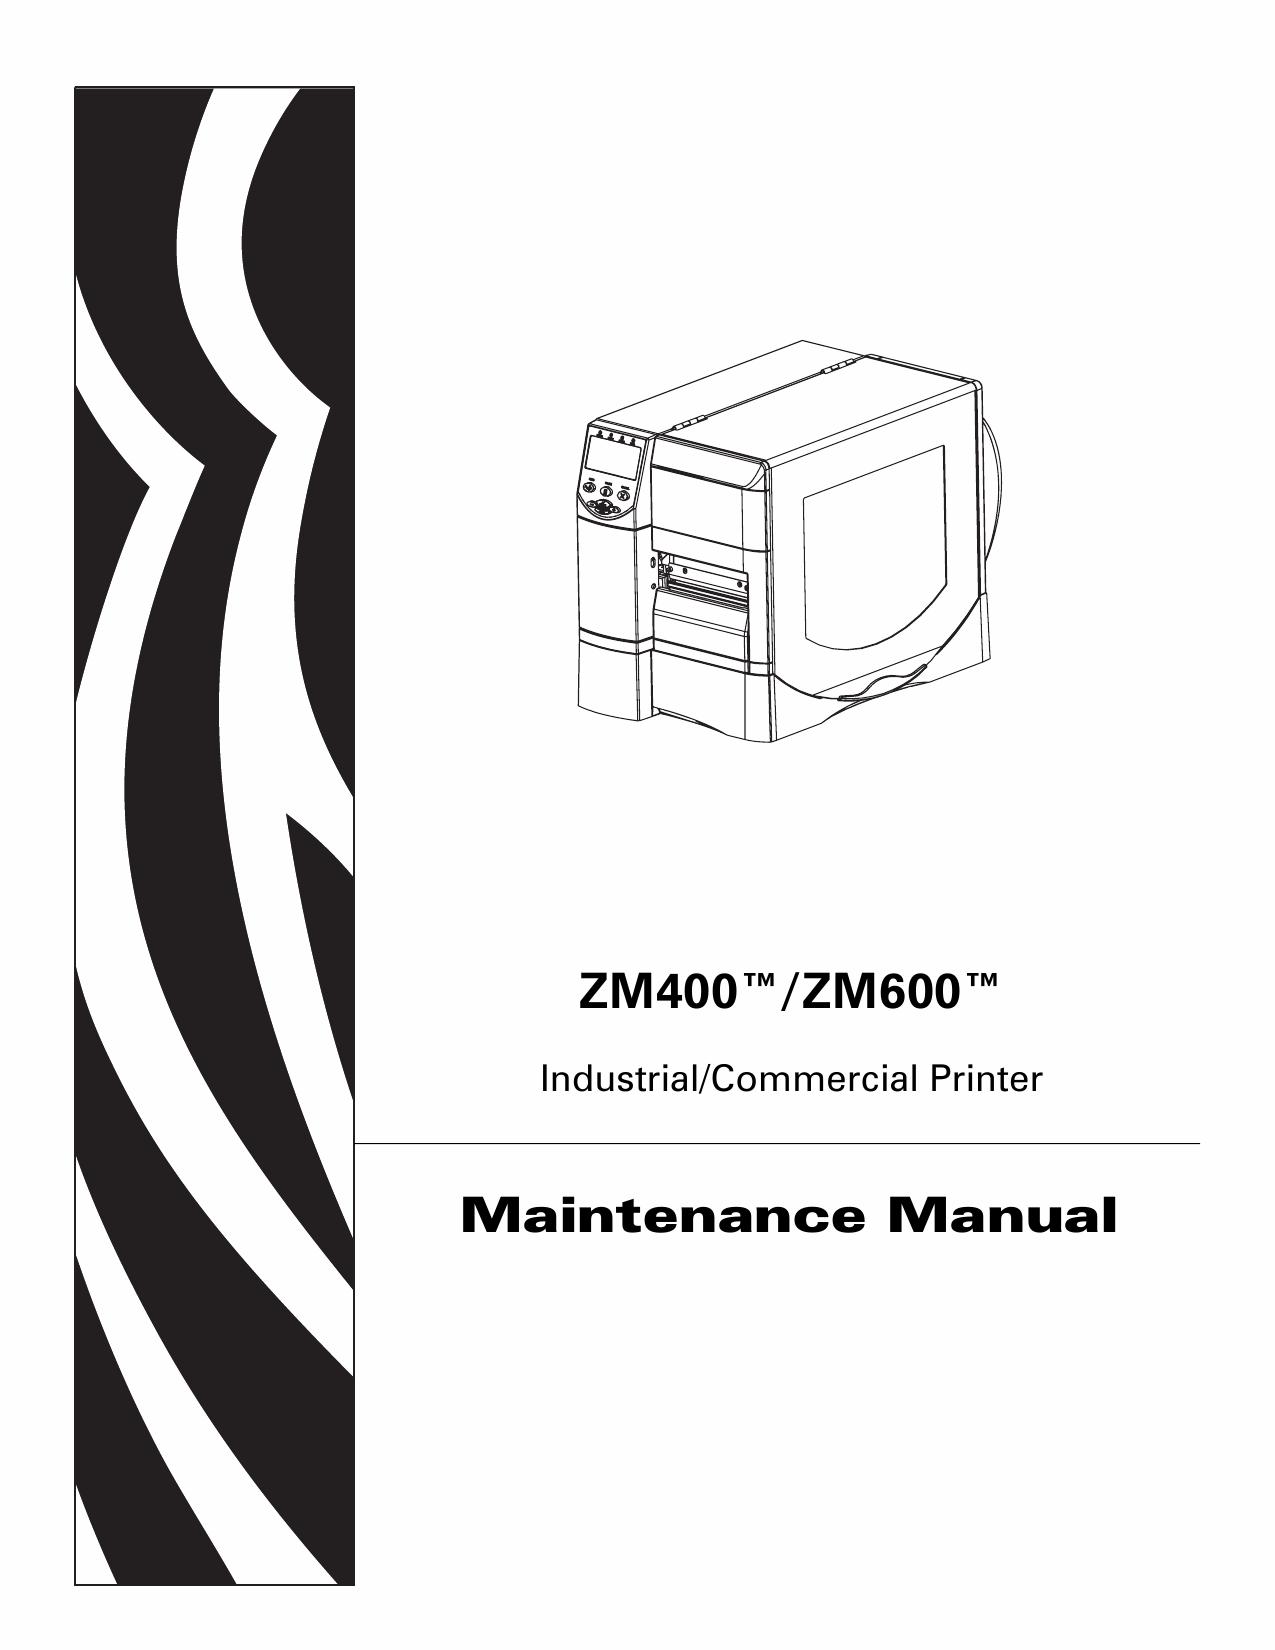 Troubleshooting Guide: Zebra Zm400 Troubleshooting Guide